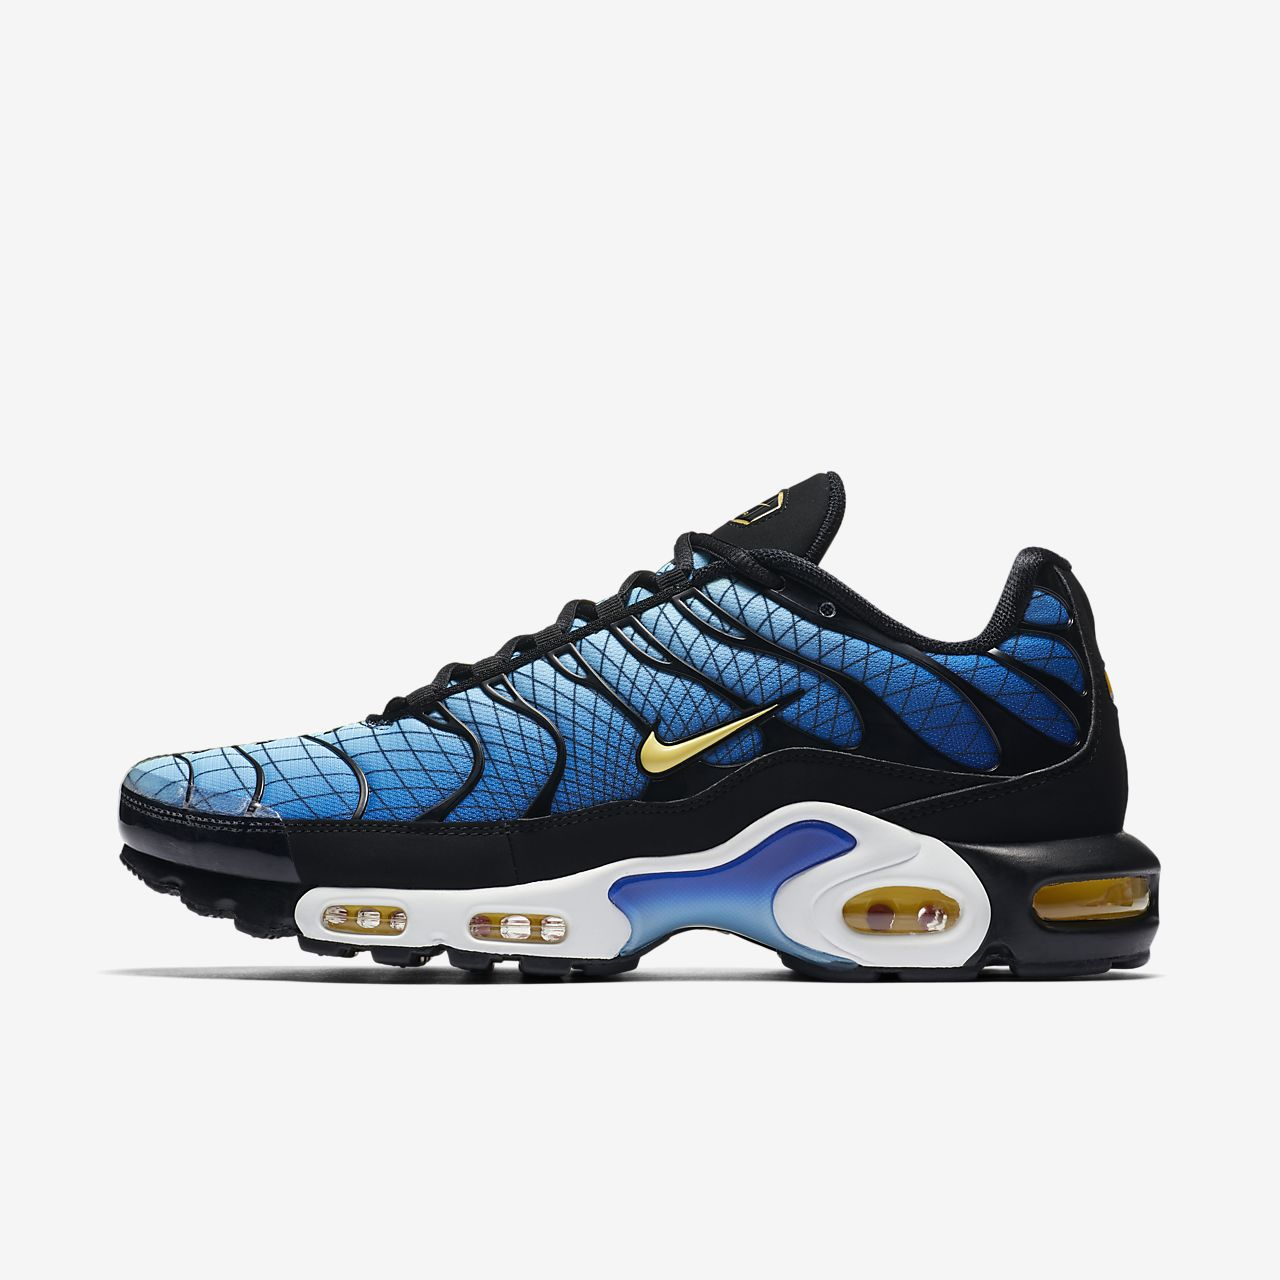 huge selection of eea85 1761e ... Chaussure Nike Air Max Plus TN SE pour Homme